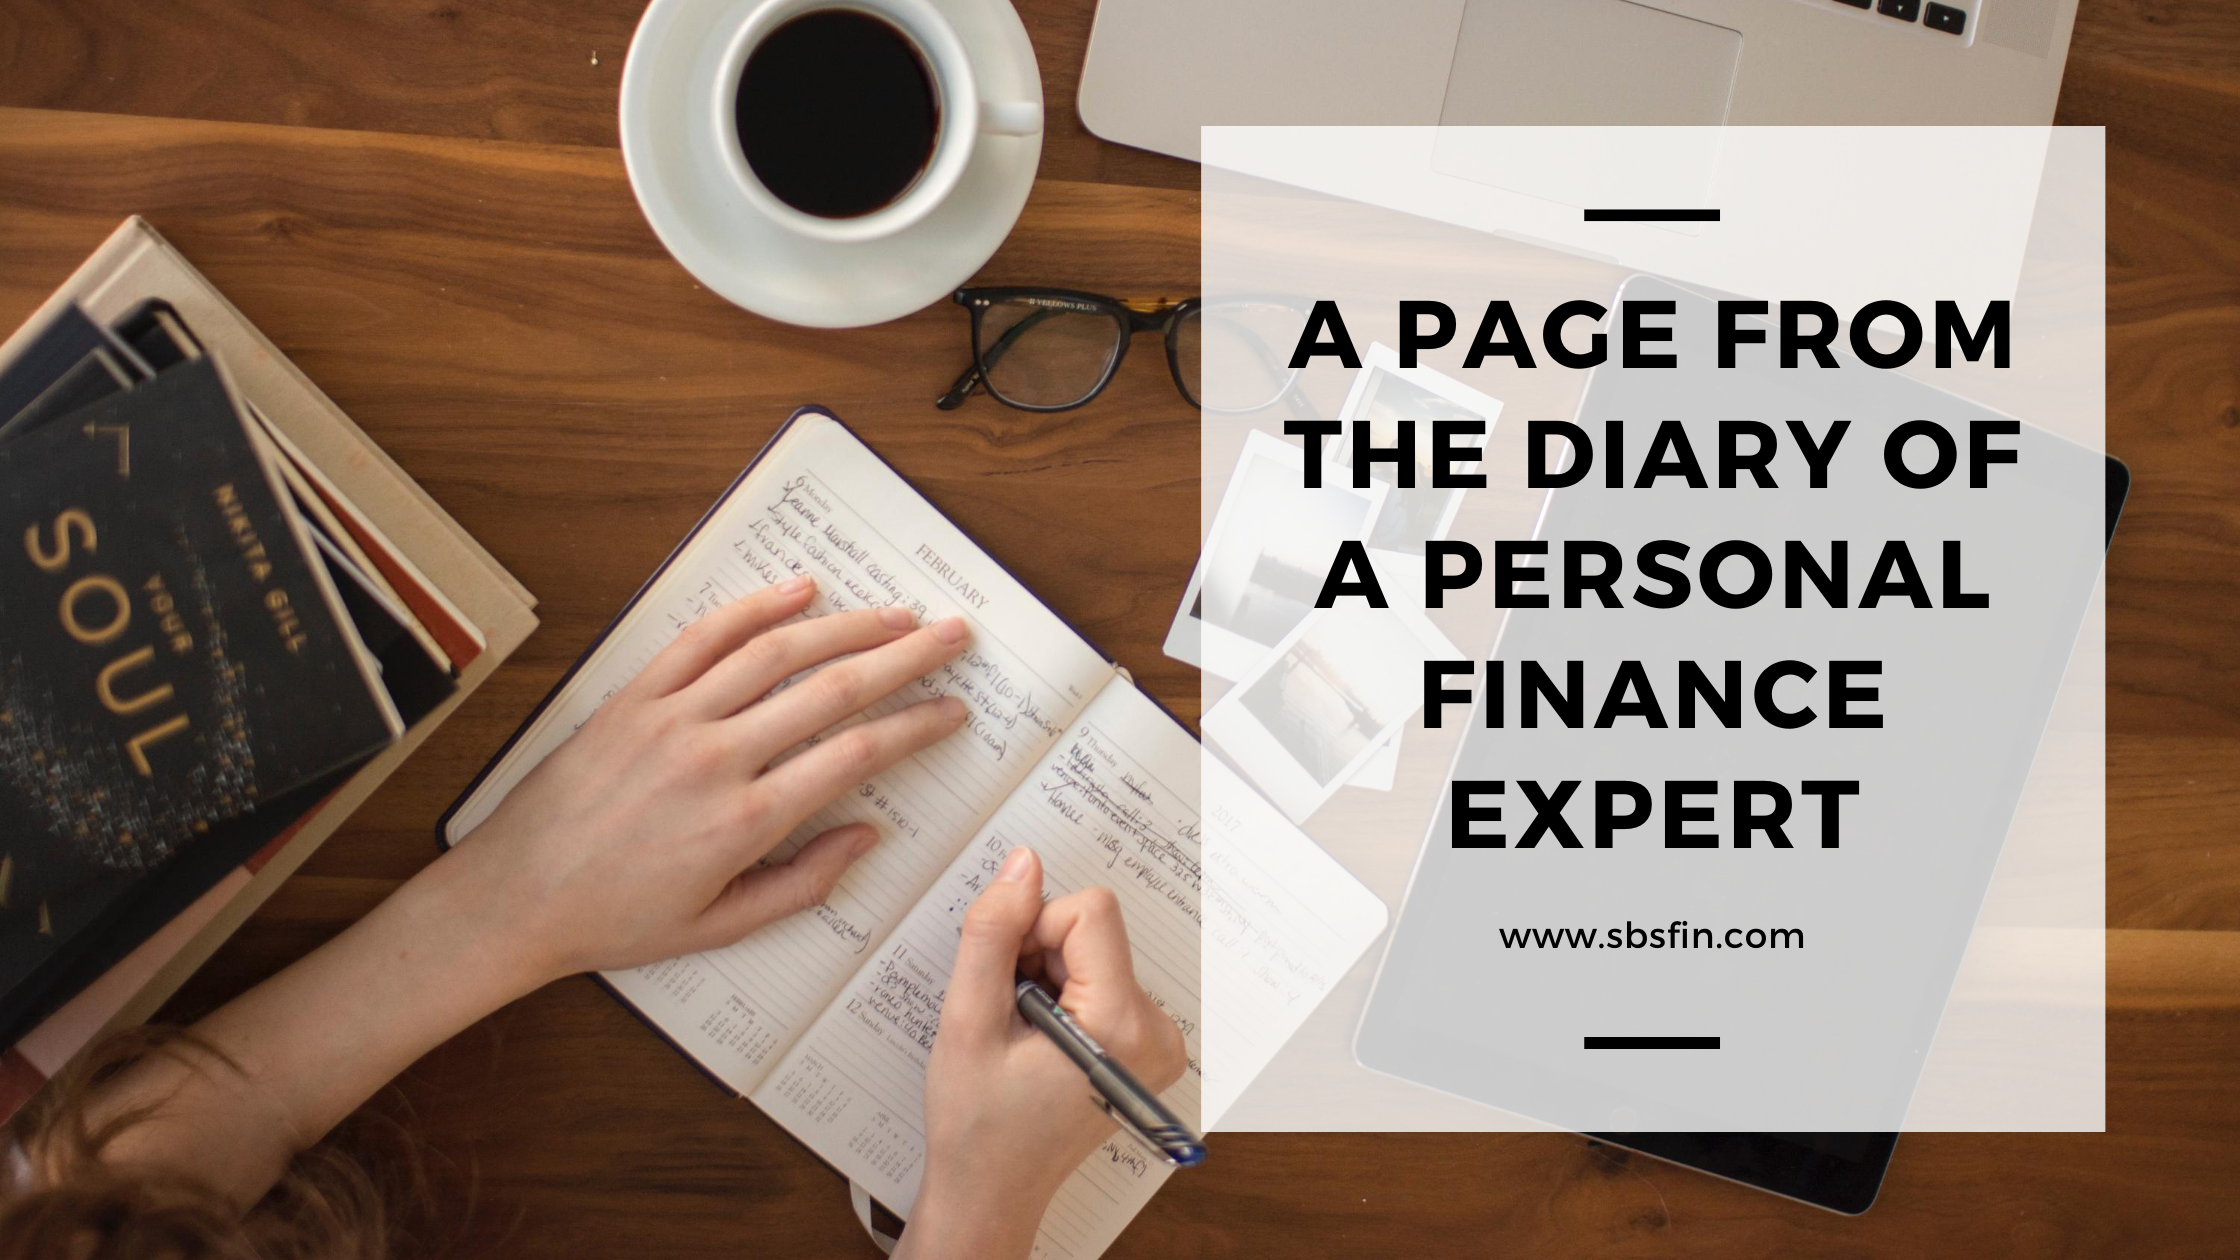 A Page from the diary of a Personal Finance Expert